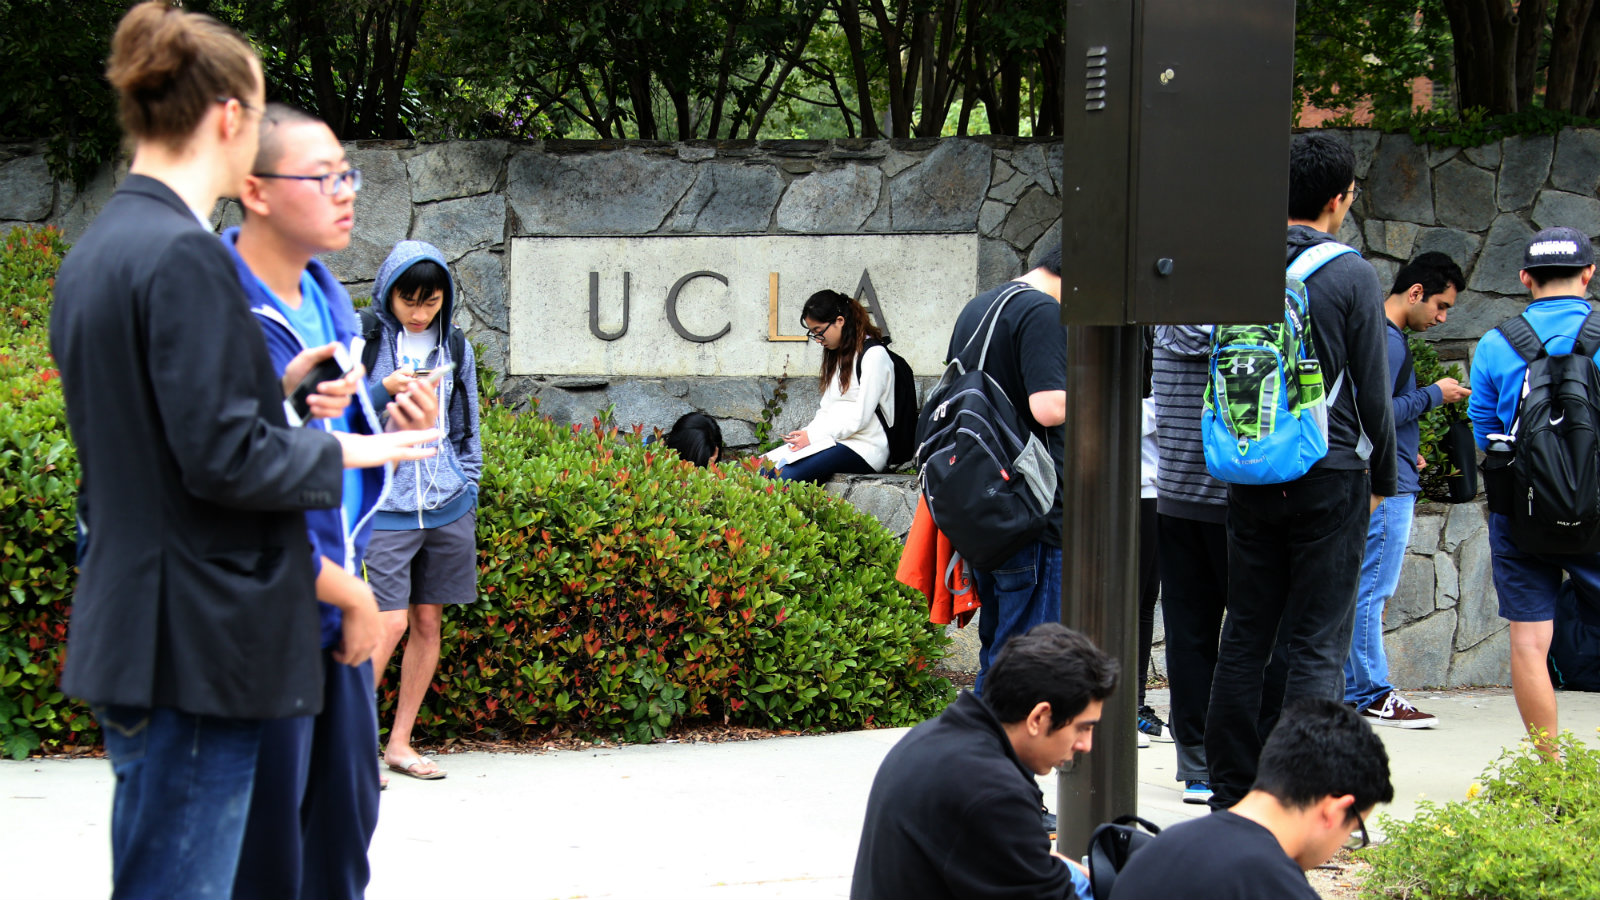 Students gather together during a lockdown at the University of California at Los Angeles campus where a shooting took place in Los Angeles, California, USA, 01 June 2016. Latest reports indicated two people were killed and law enforcement is treating the incident as a murder-suicide situation.